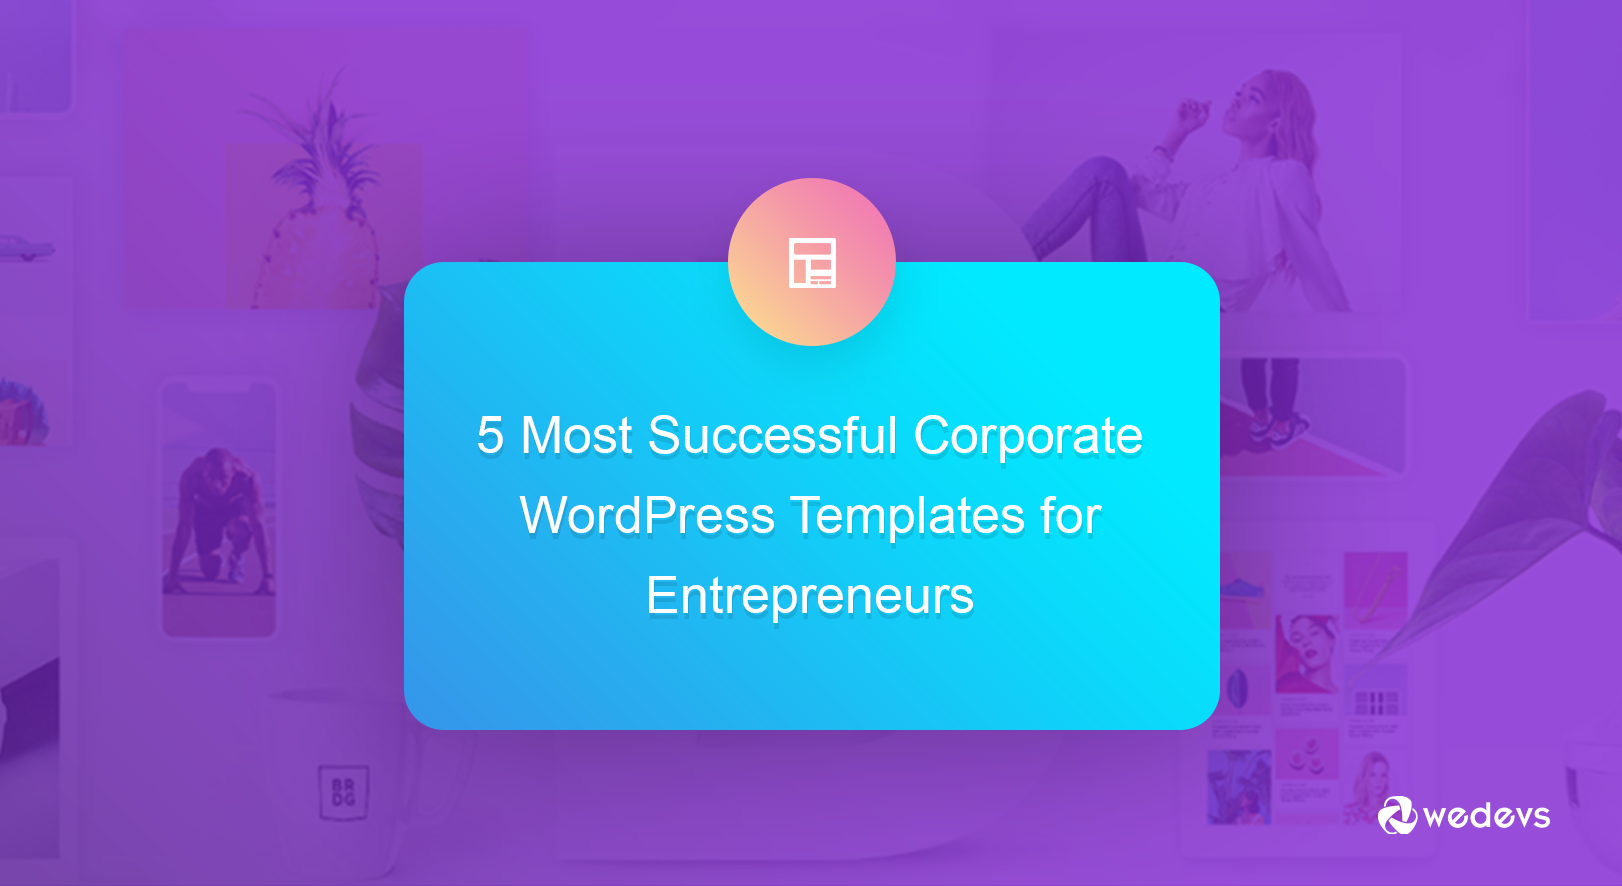 5 Most Successful Corporate WordPress Templates for Entrepreneurs